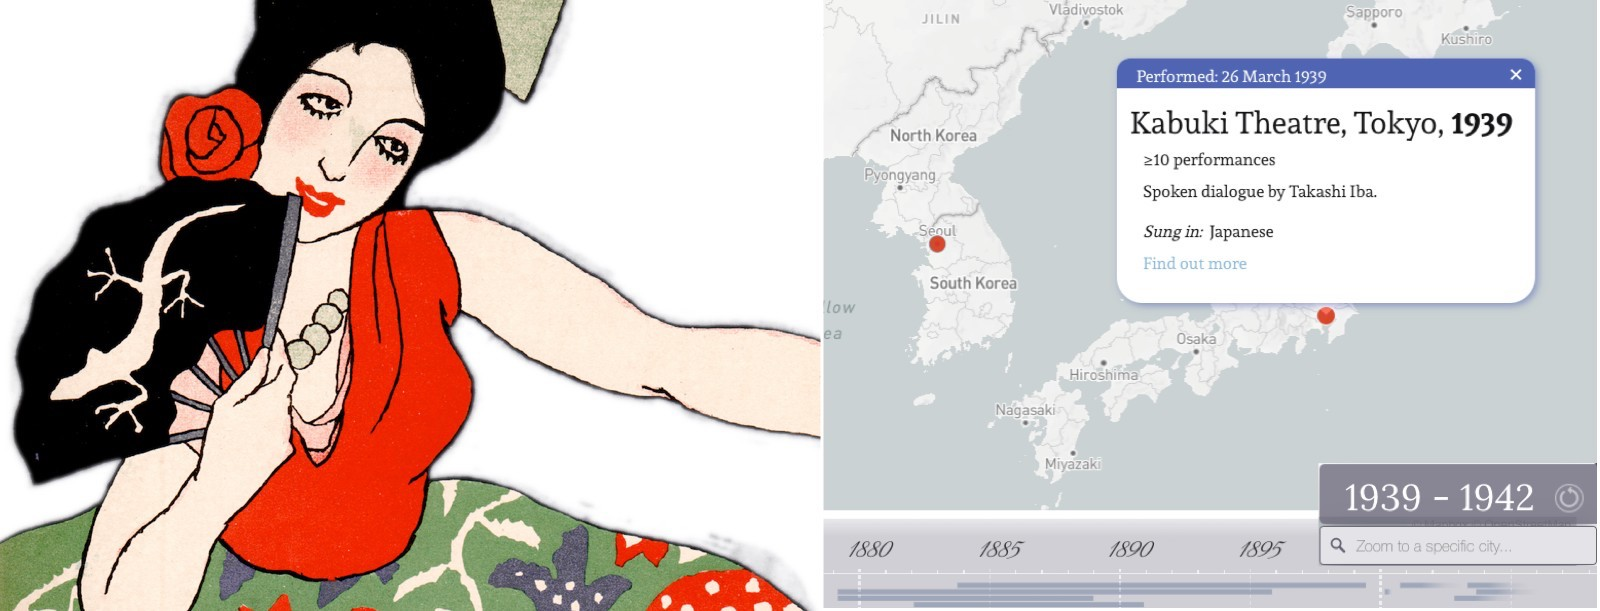 split image: left, a 19th century artistic drawing of the character Carmen, from a playbill; right, a screenshot of the interactive map